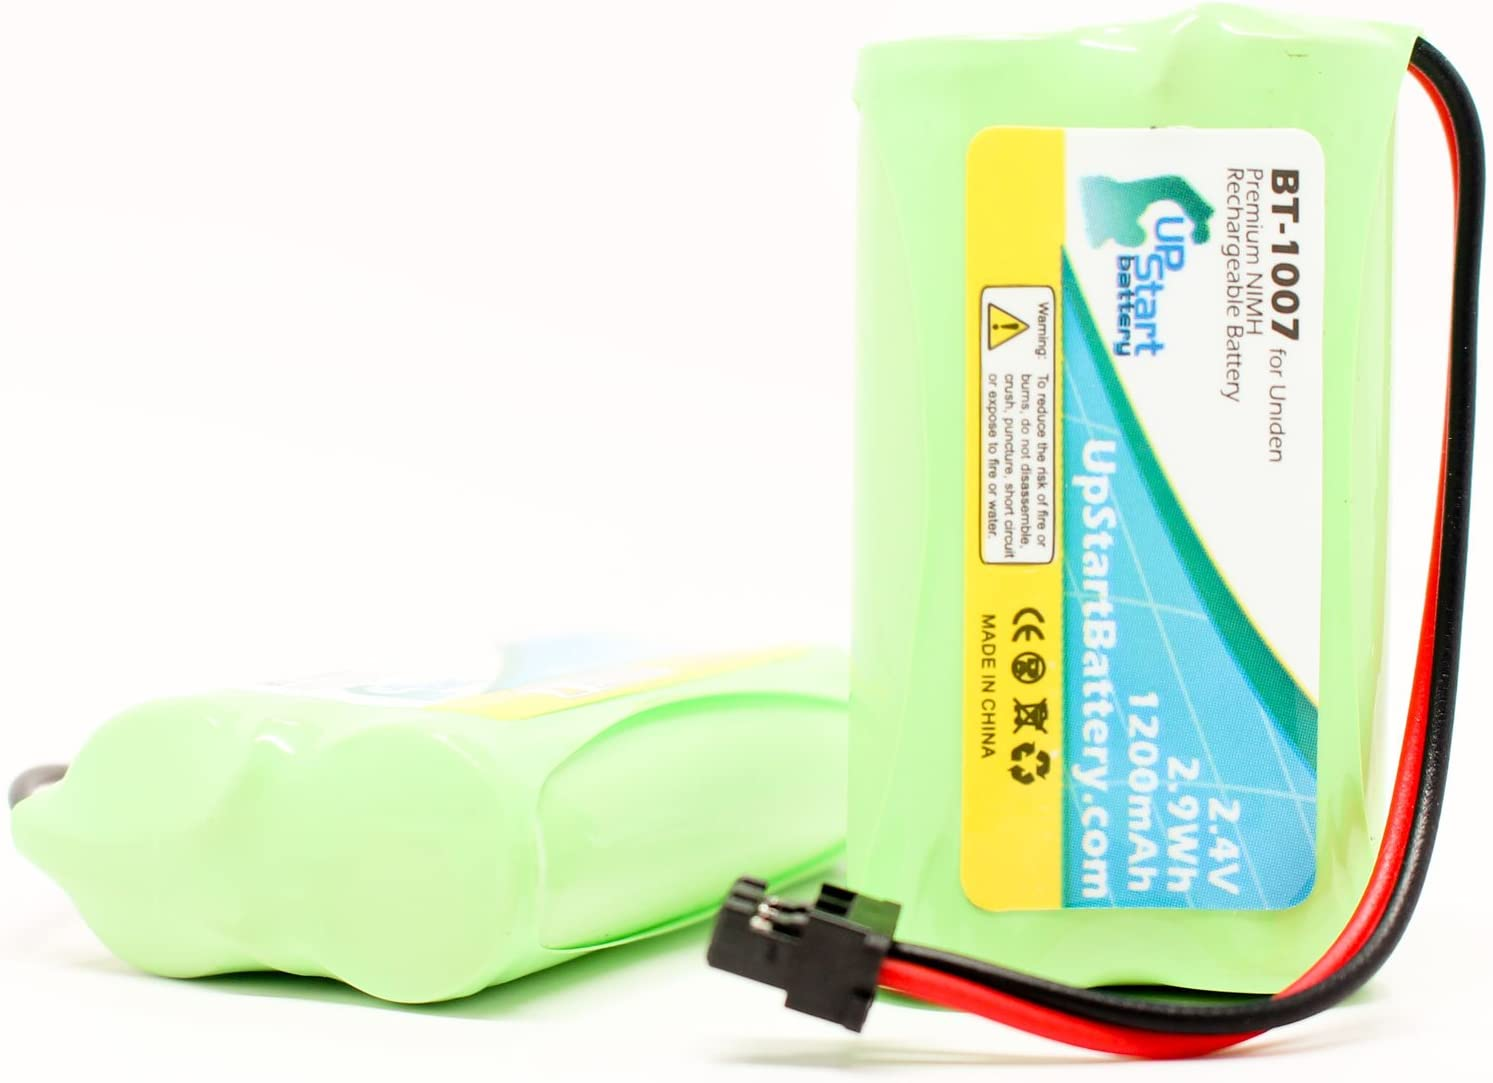 2 Pack Replacement for Uniden EZAI-2997 Battery Compatible with Uniden BT-1007 Cordless Phone Battery 1200mAh 2.4V NI-MH